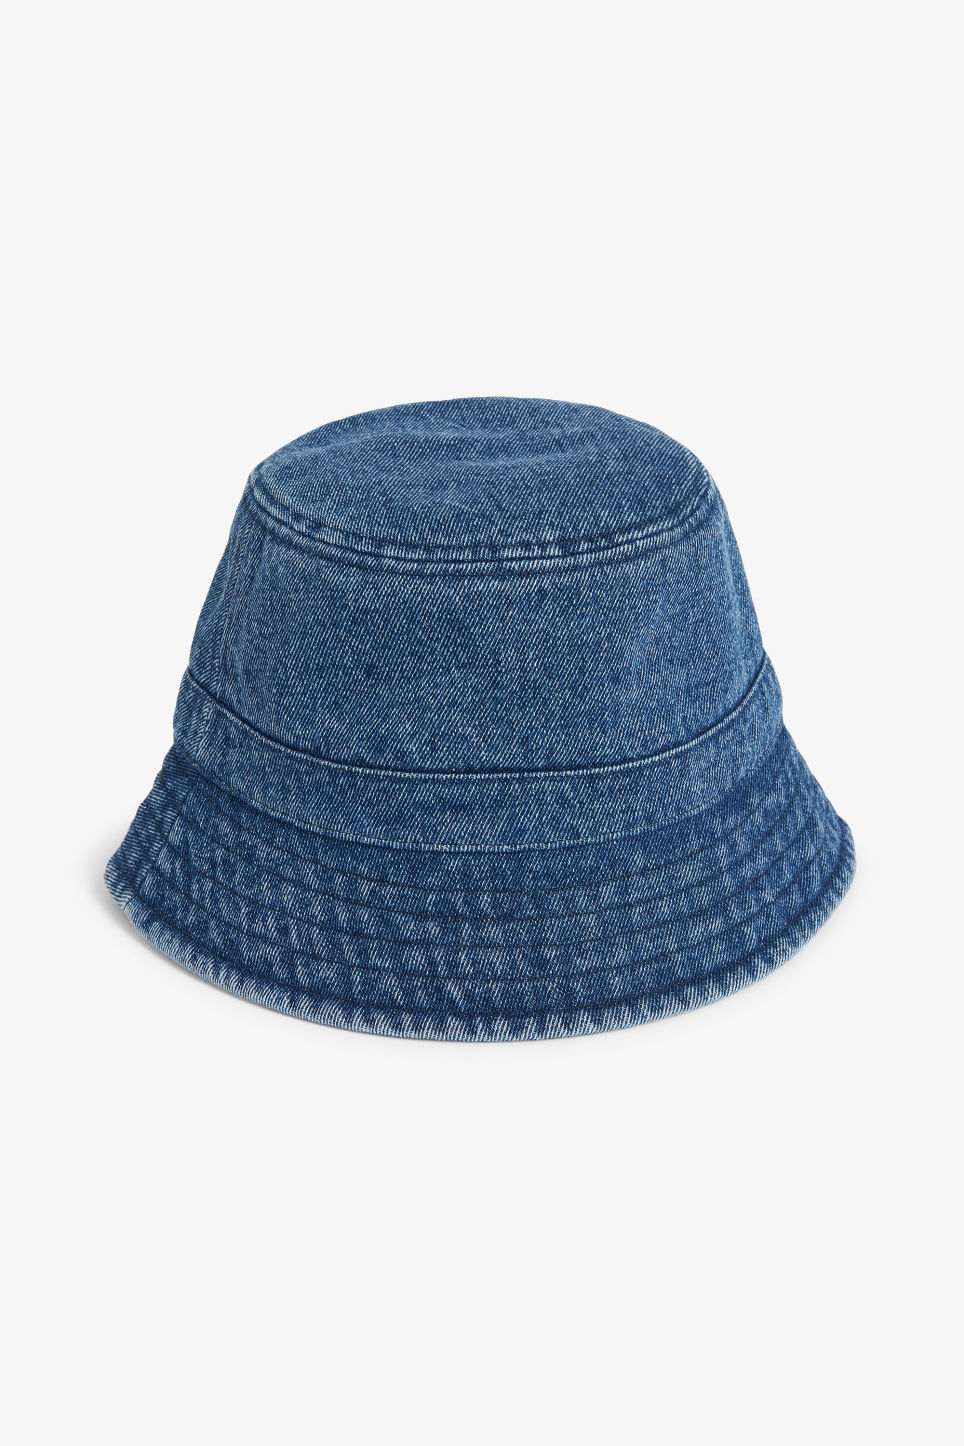 51f3987eb7b Denim bucket hat - Mid blue - Hats